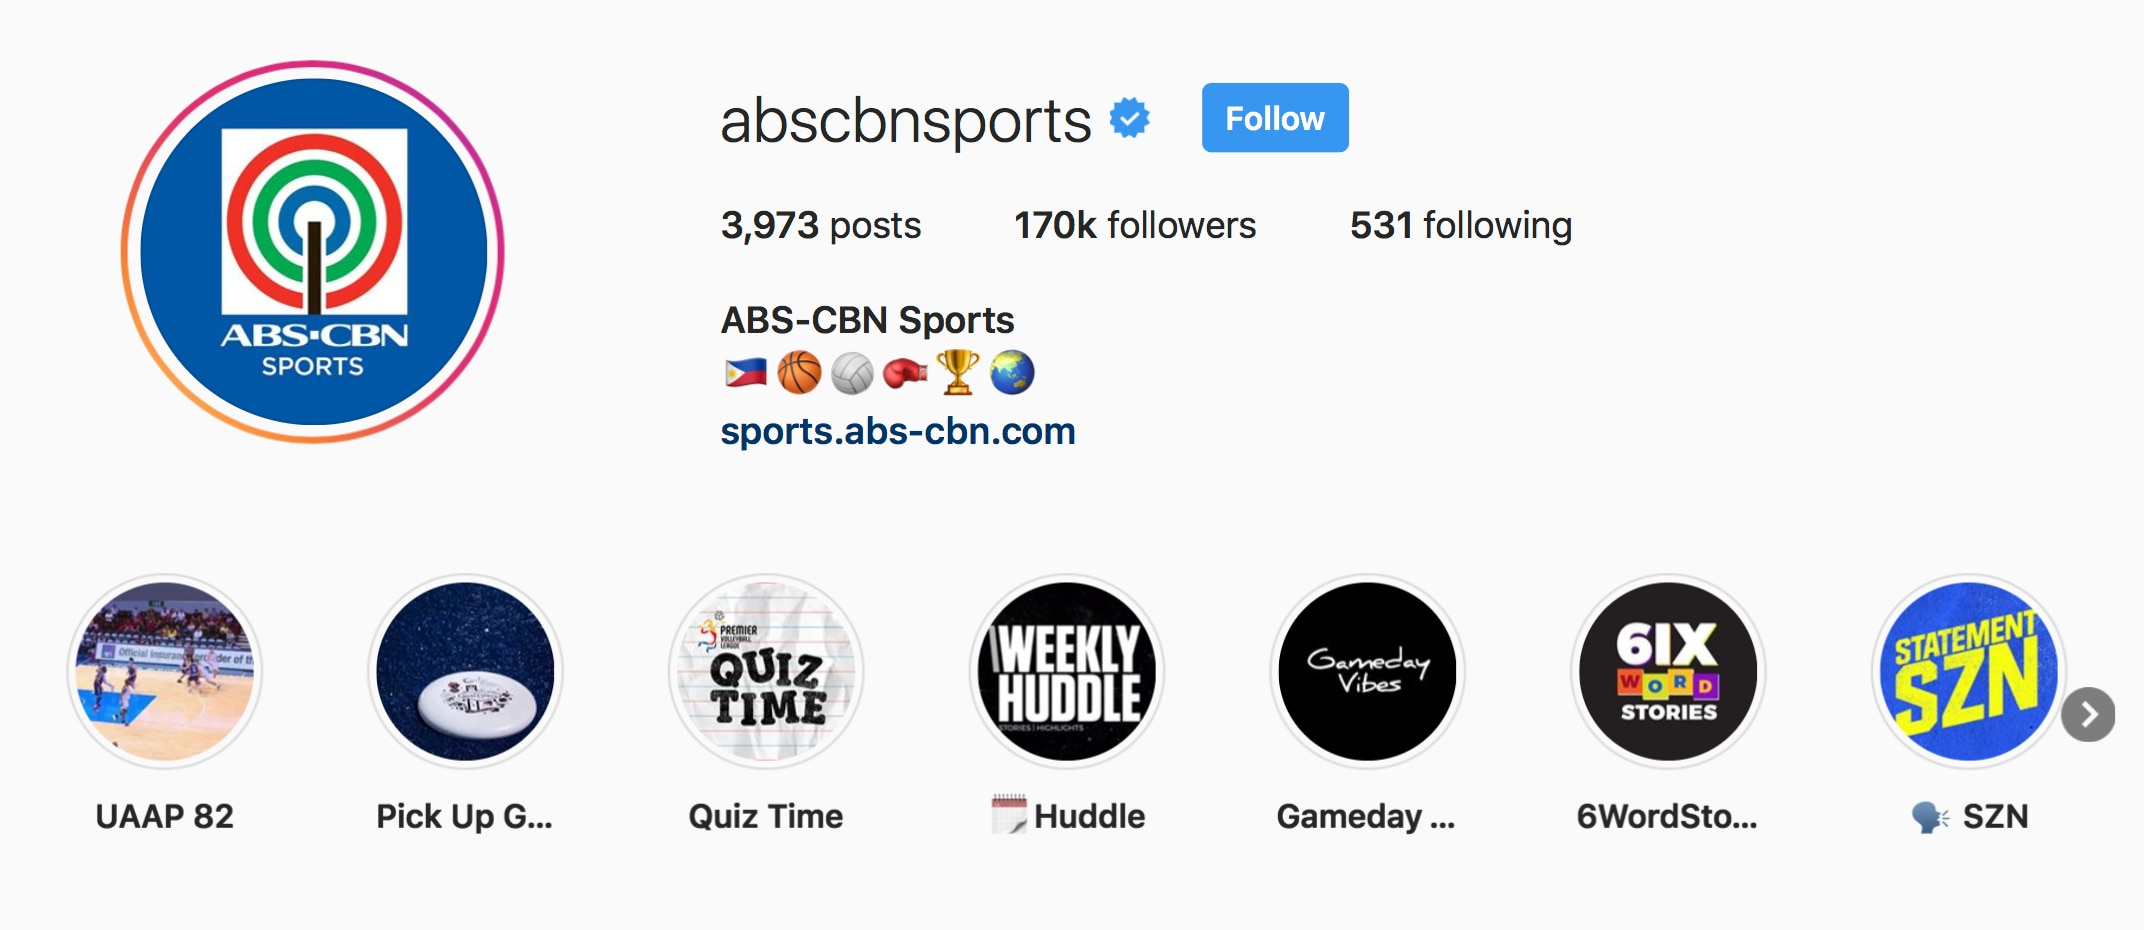 The ABS CBN Sports Instagram is gaining followers in a faster rate with its well curated content